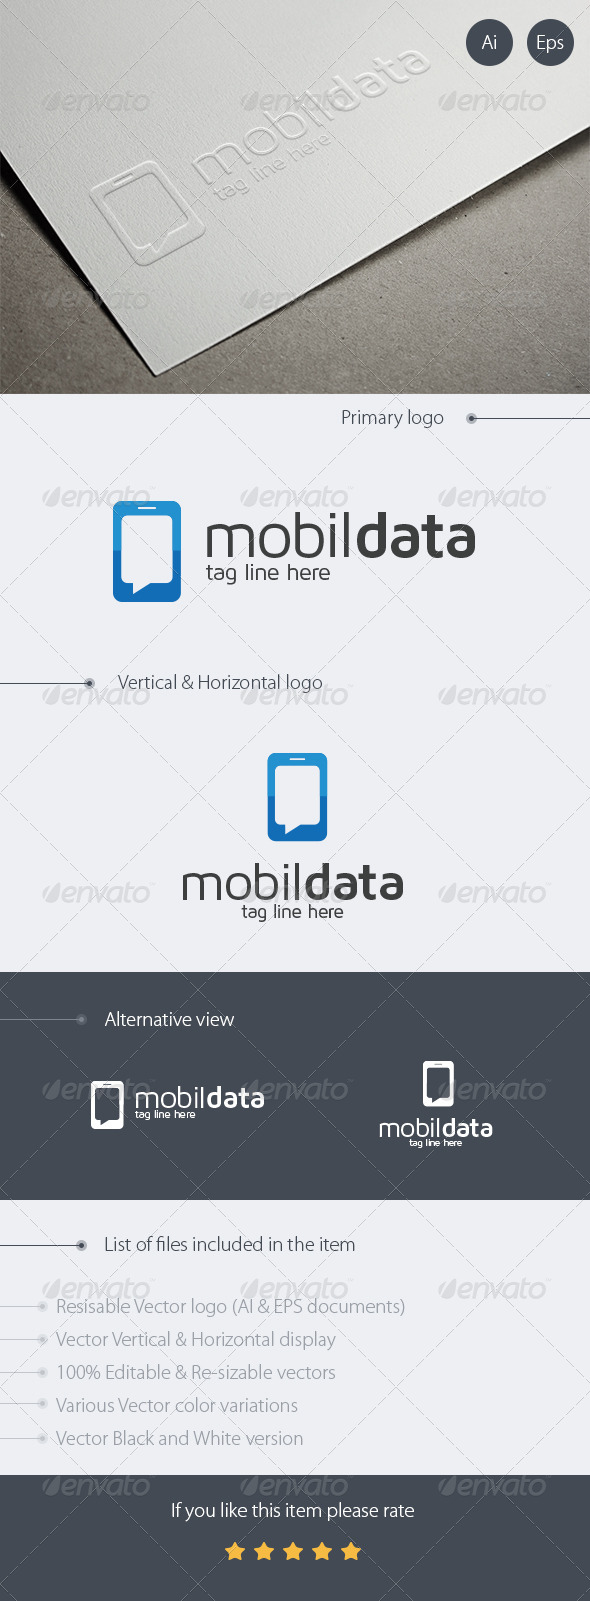 Mobile Data Logo Design - Logo Templates